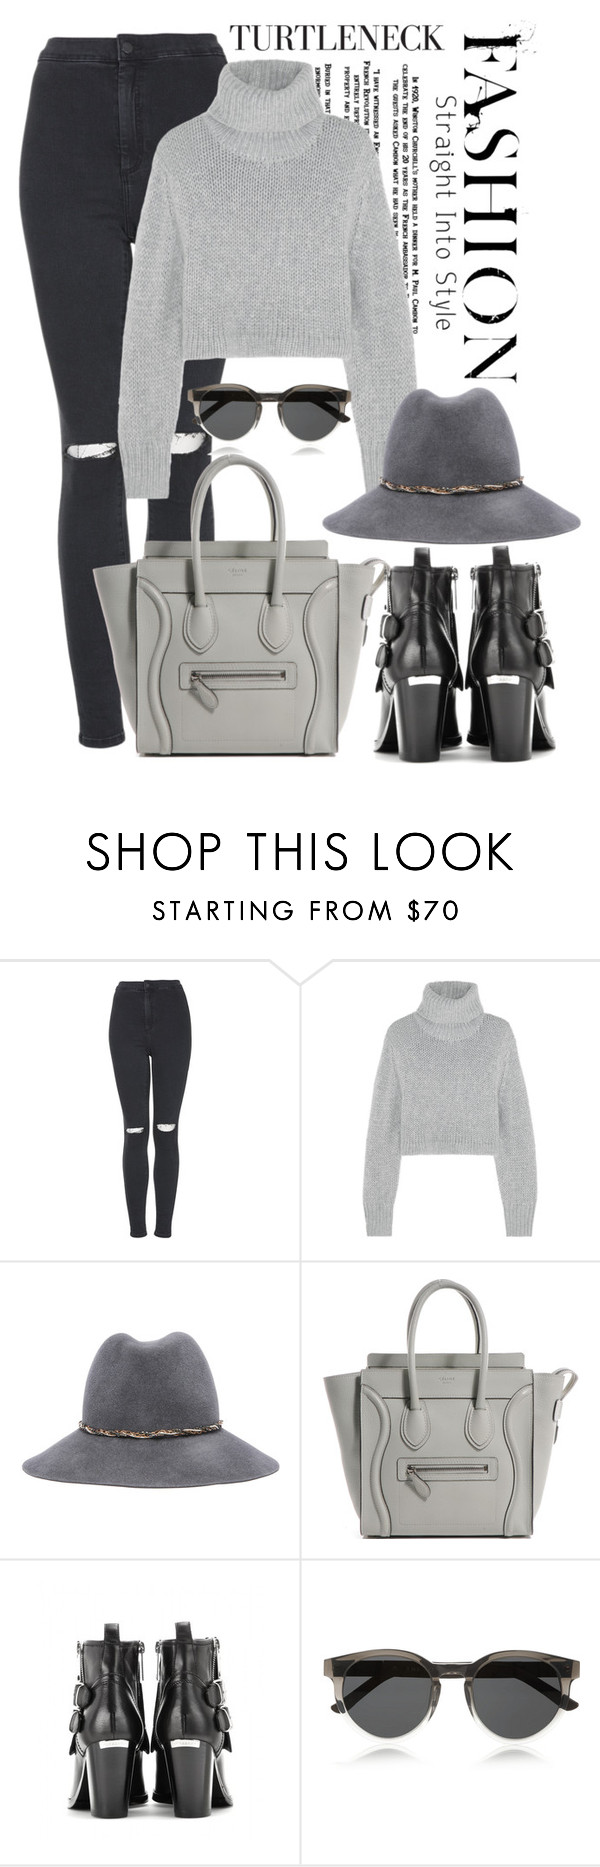 """""""Wardrobe Staple: The Turtleneck"""" by yumi-aug ❤ liked on Polyvore featuring Topshop, Dion Lee, Eugenia Kim, Burberry and The Row"""